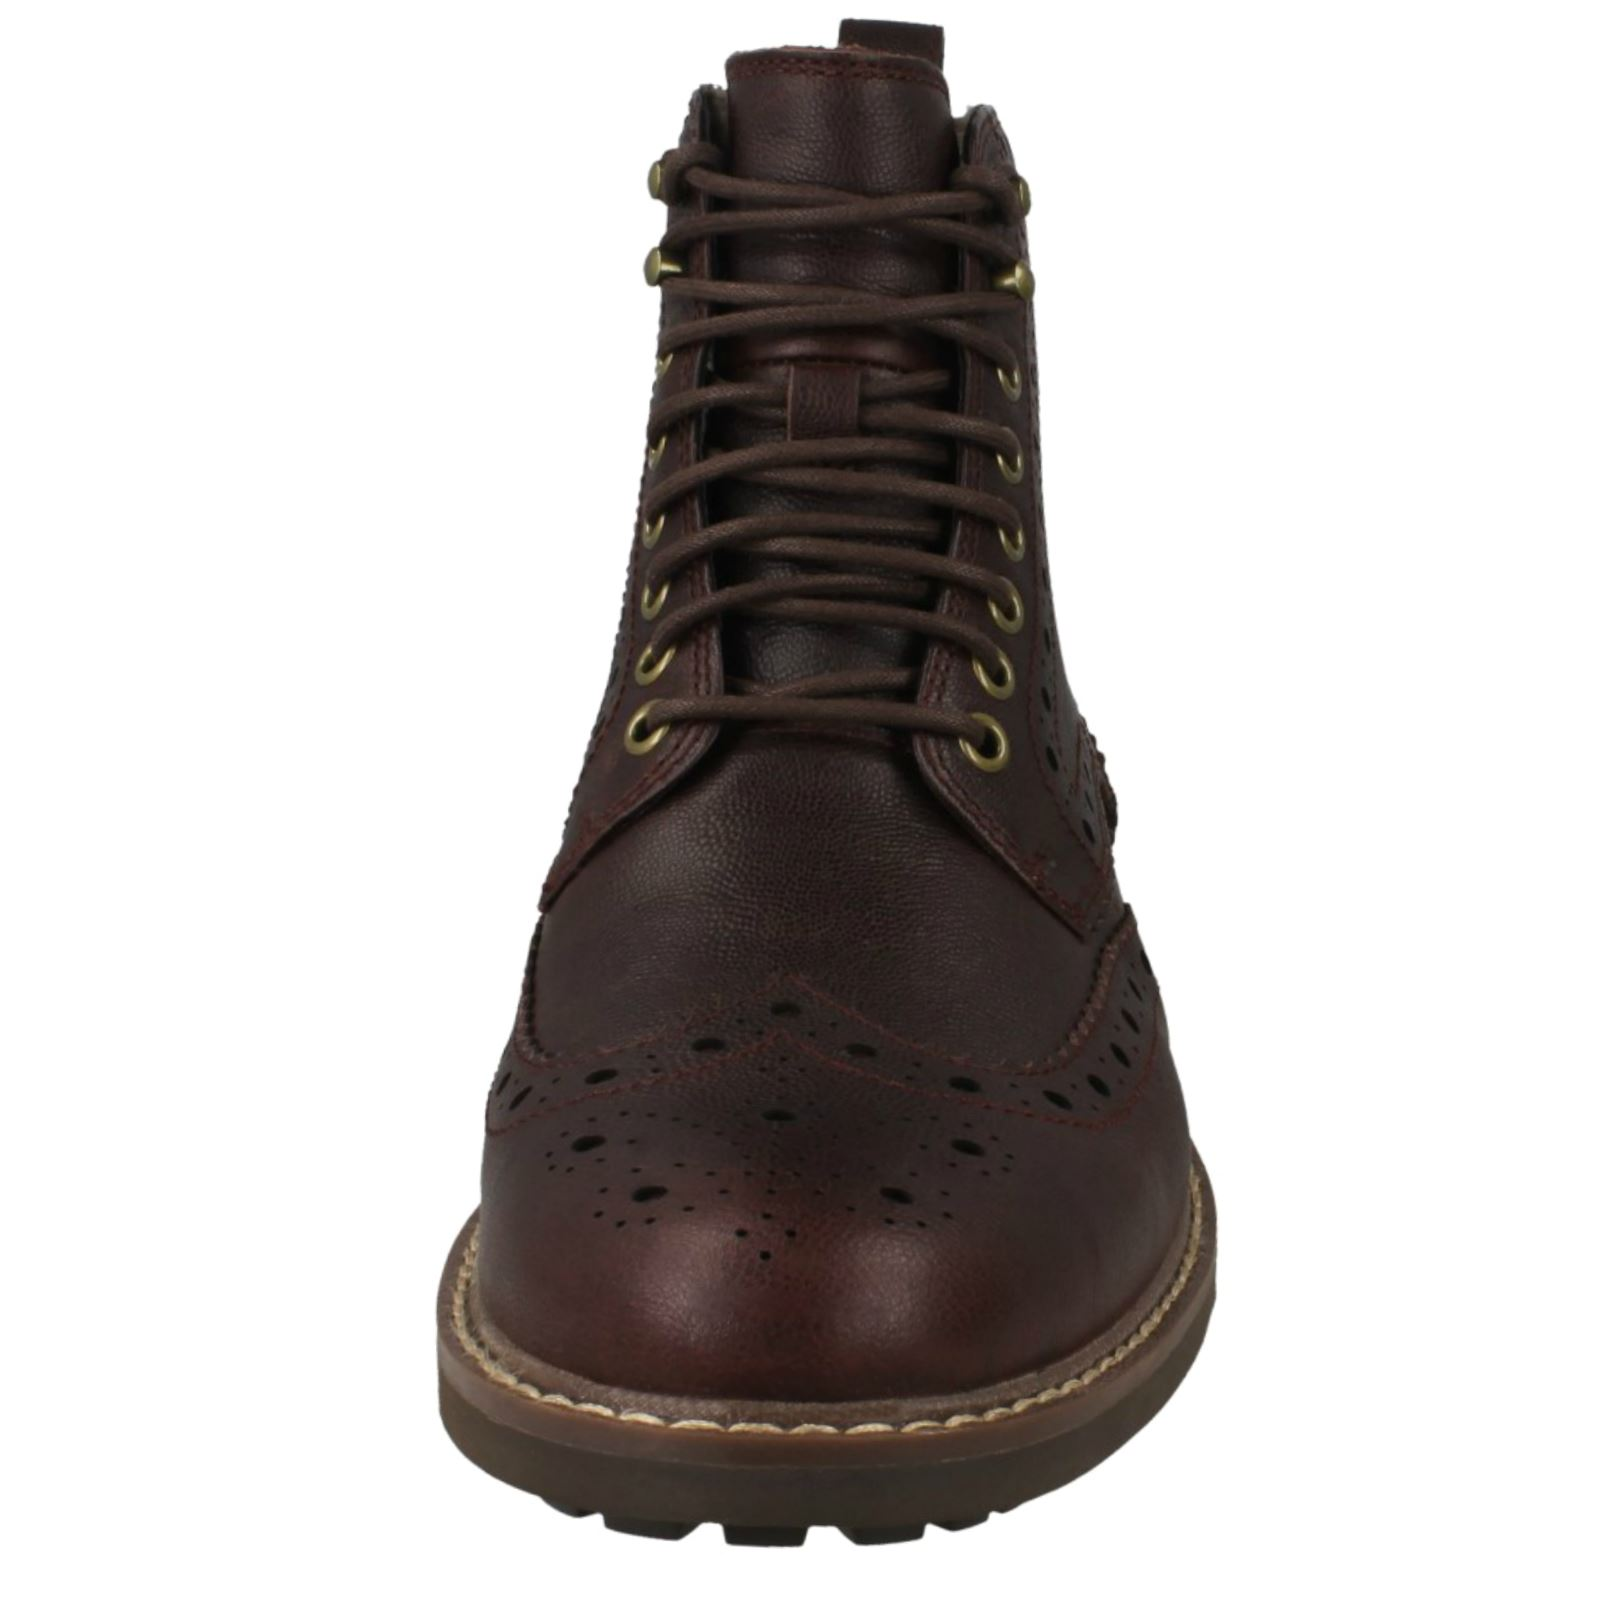 Mens Clarks Formal Boots /'Montacute Lord/'